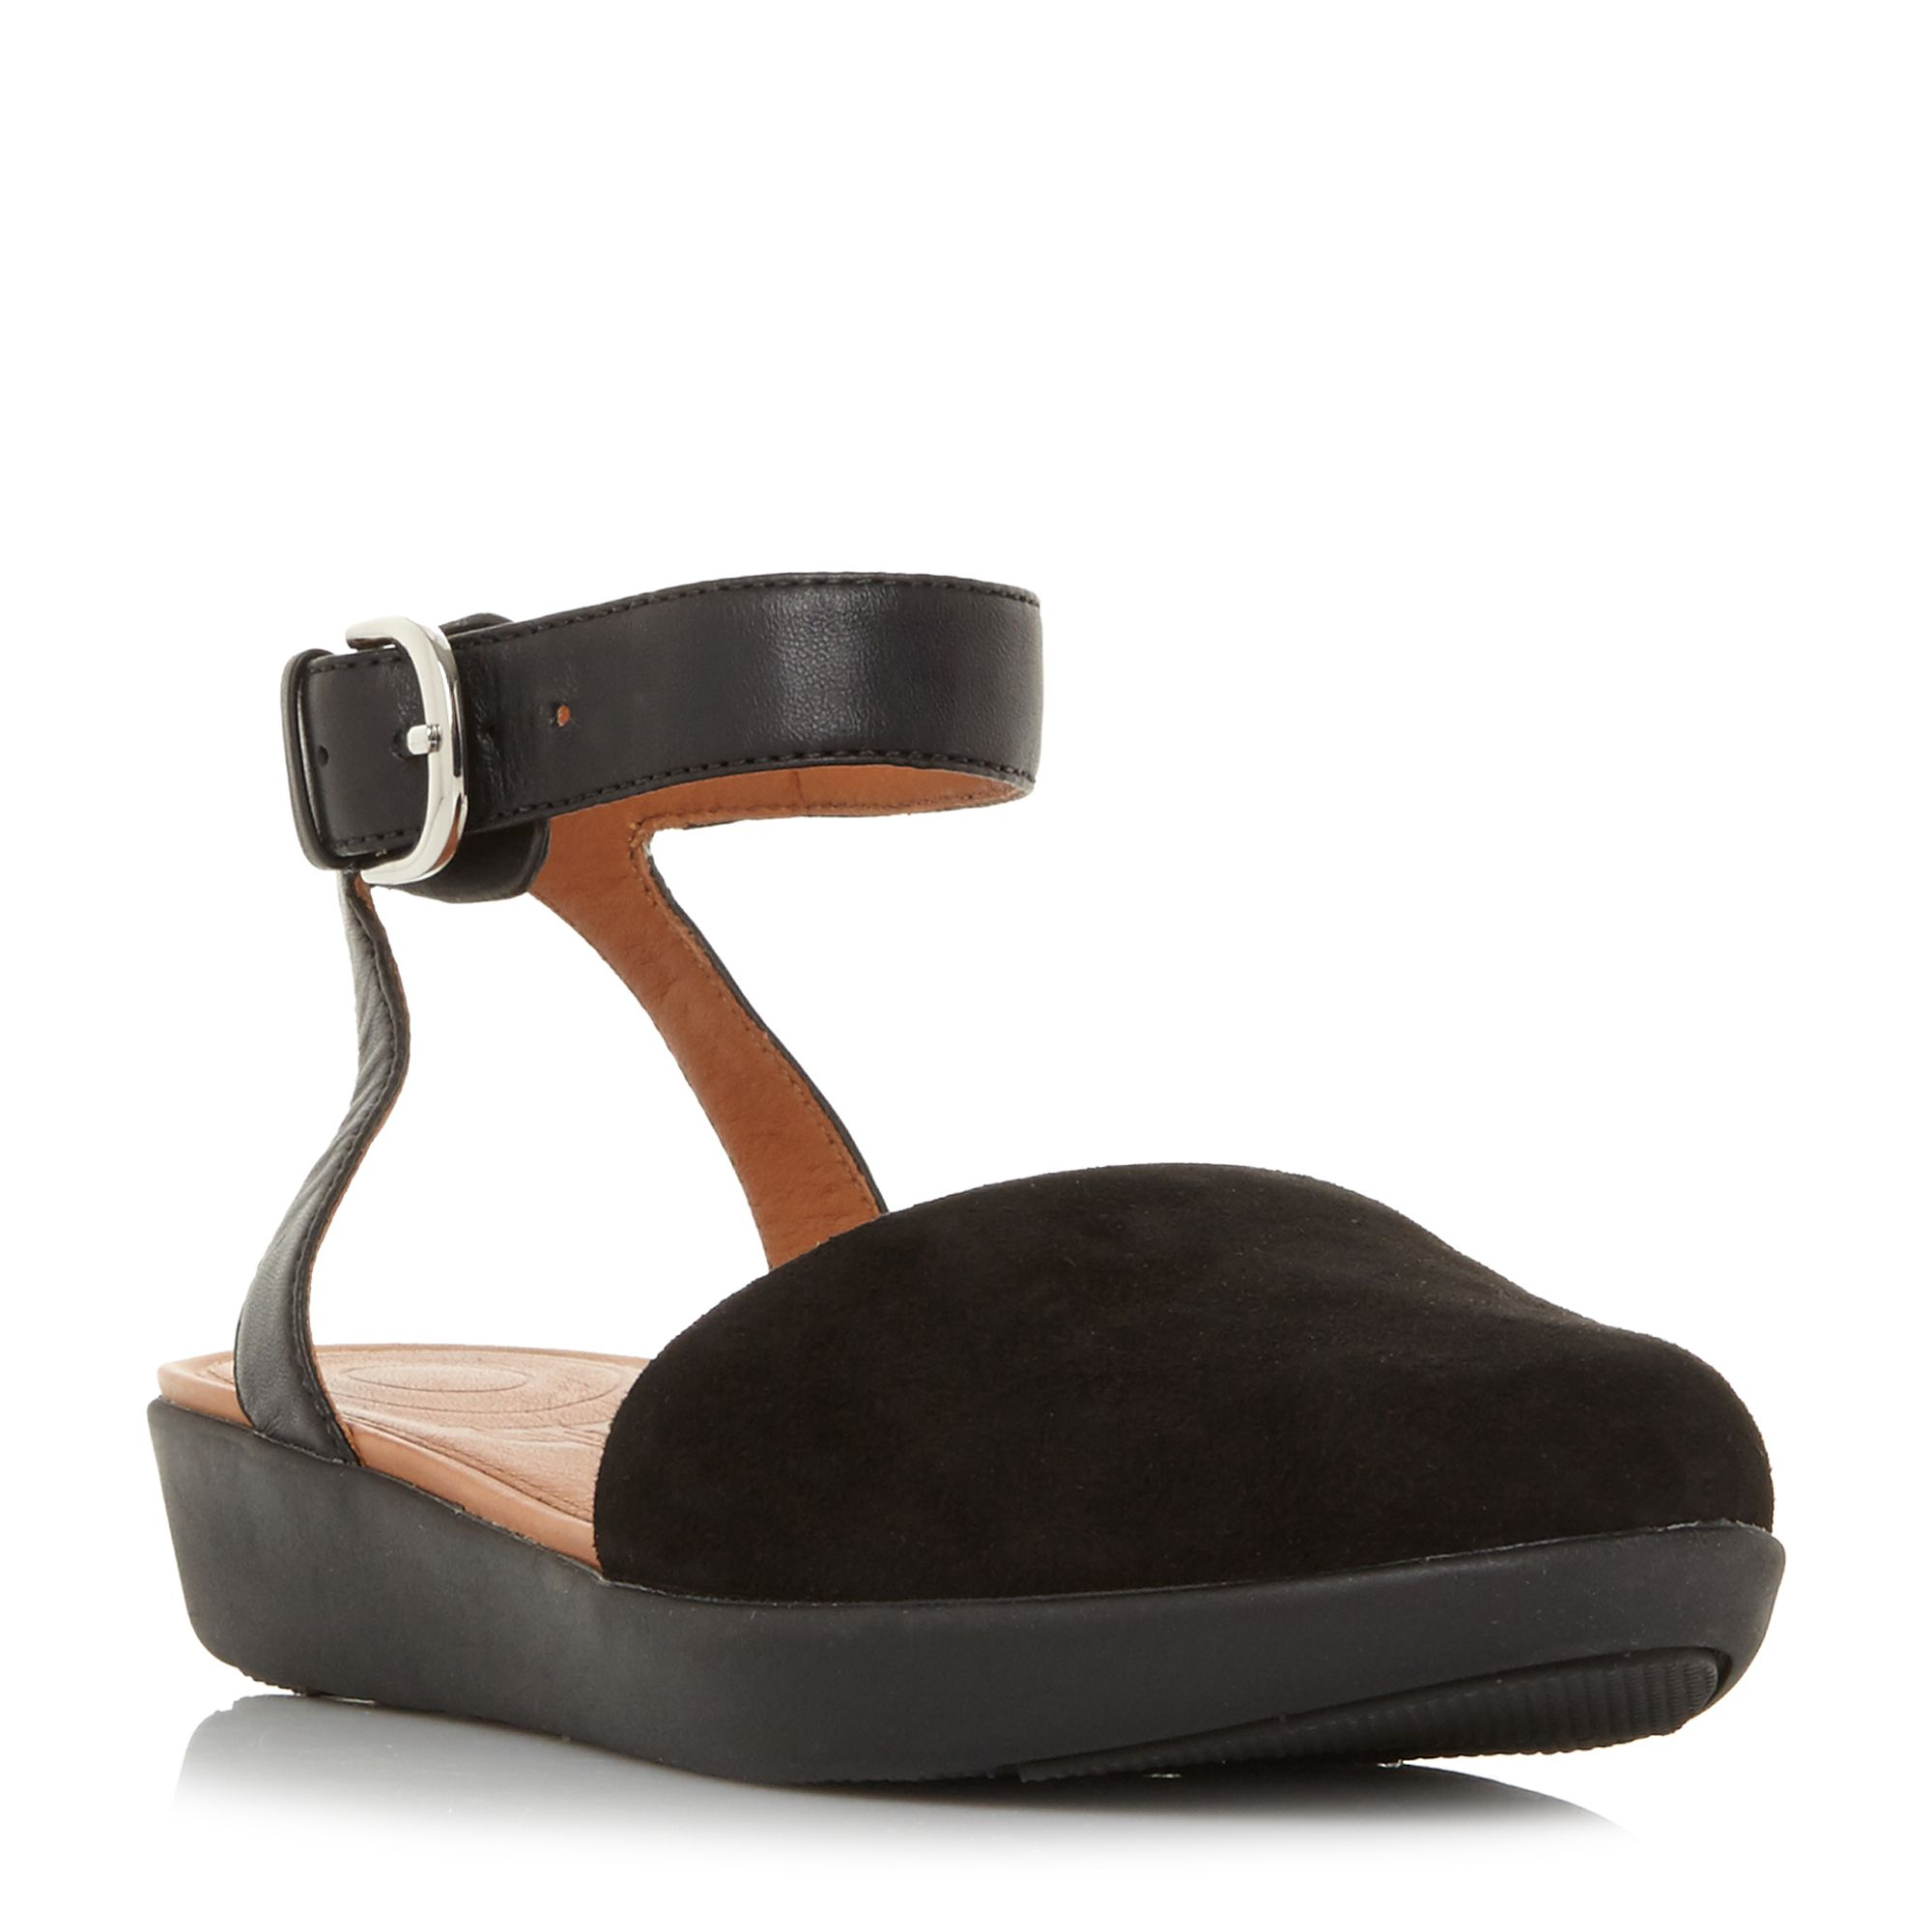 FitFlop Cova Closed Toe Sandal Shoes, Black